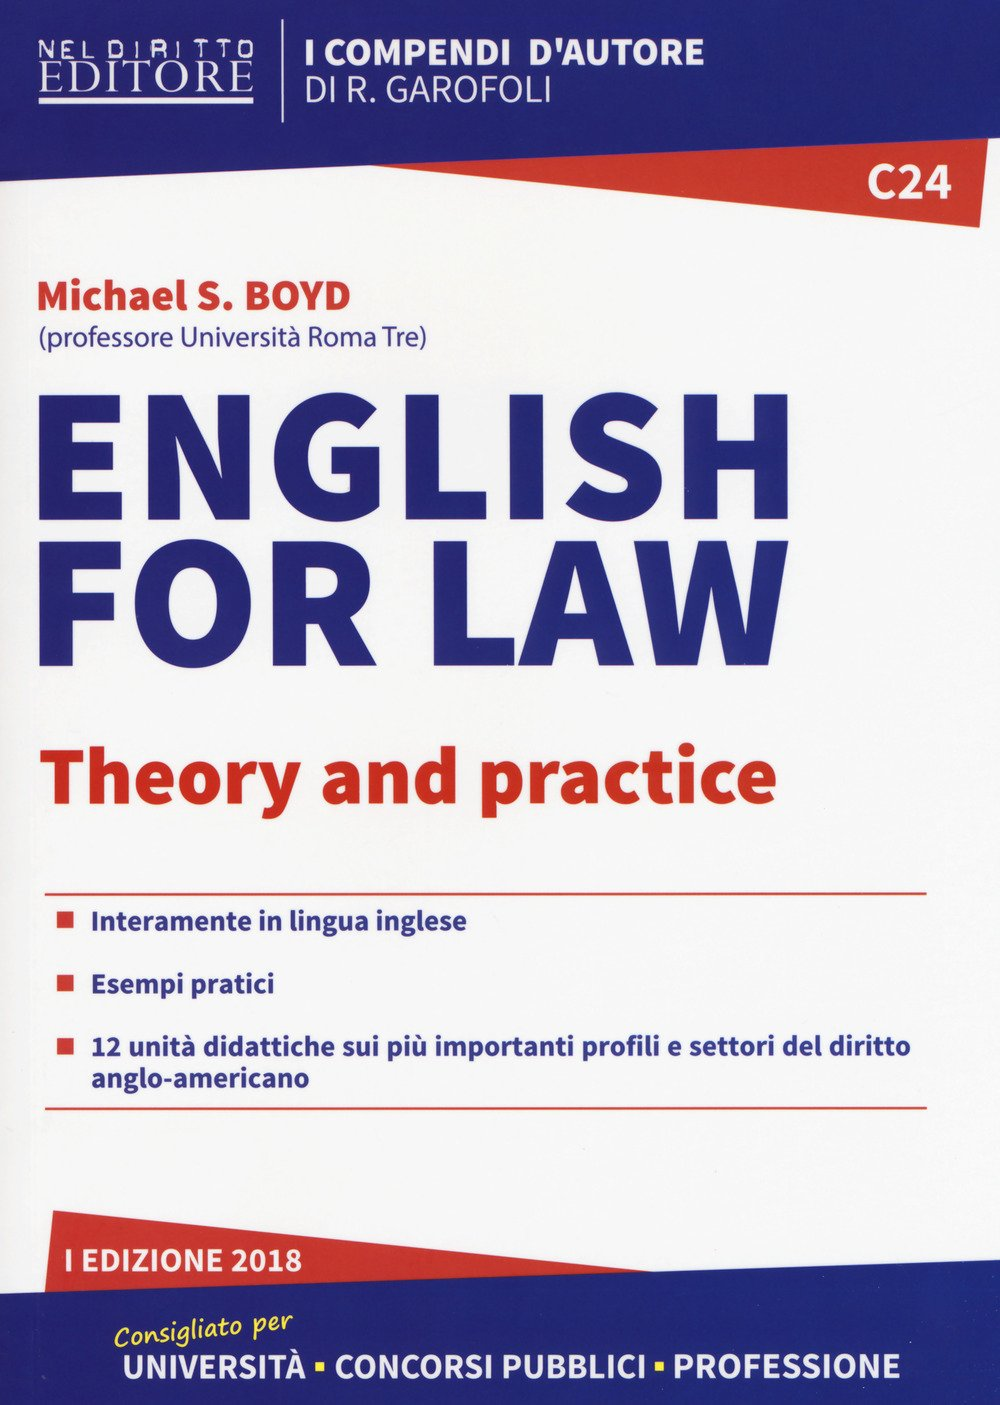 English-for-law-Theory-and-practice-Neldiritto-it